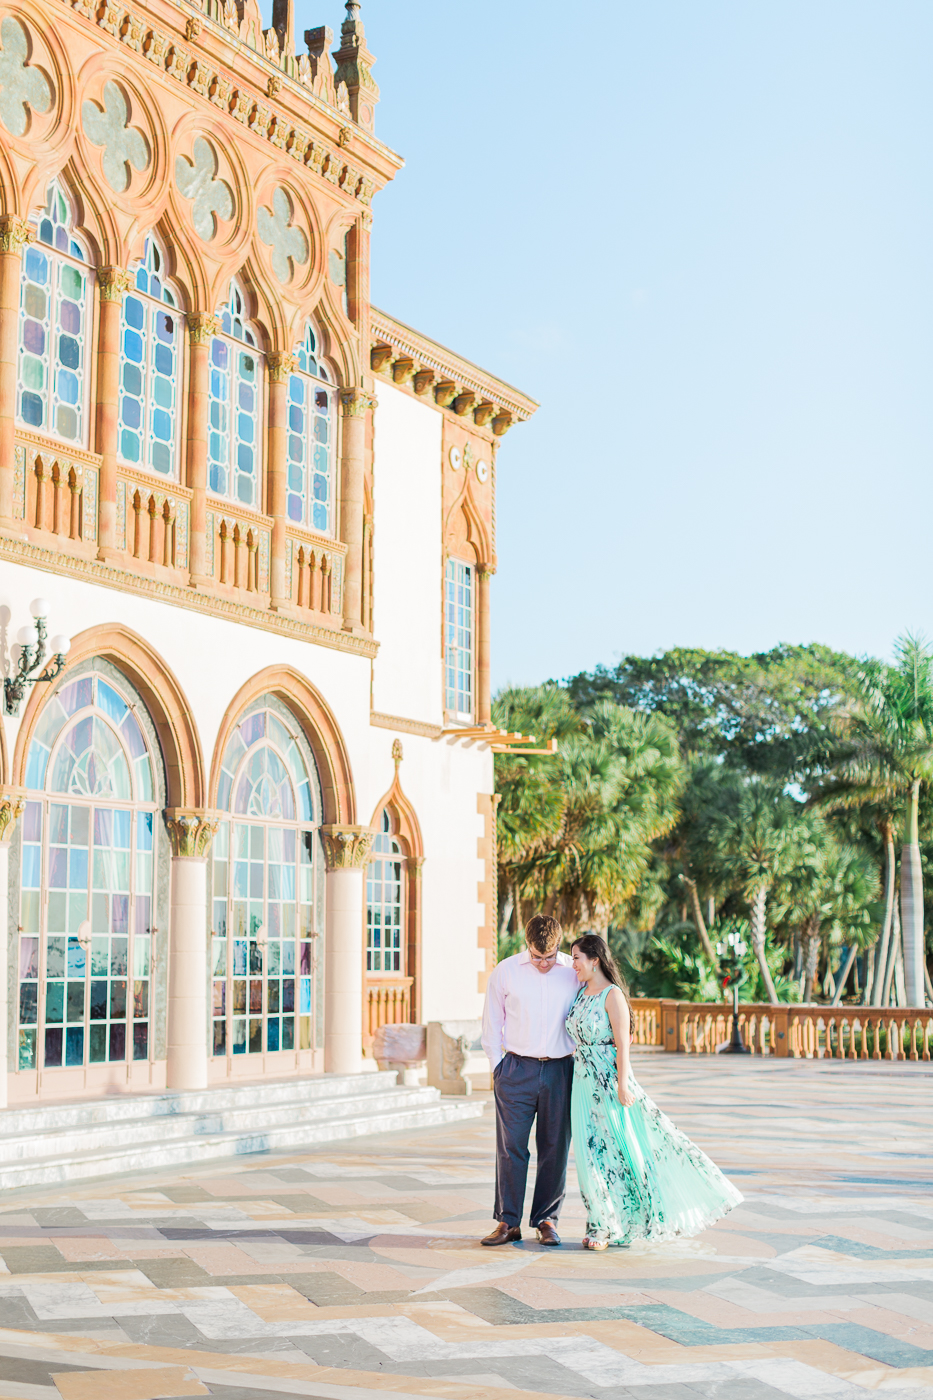 Jenny + David - sarasota, florida